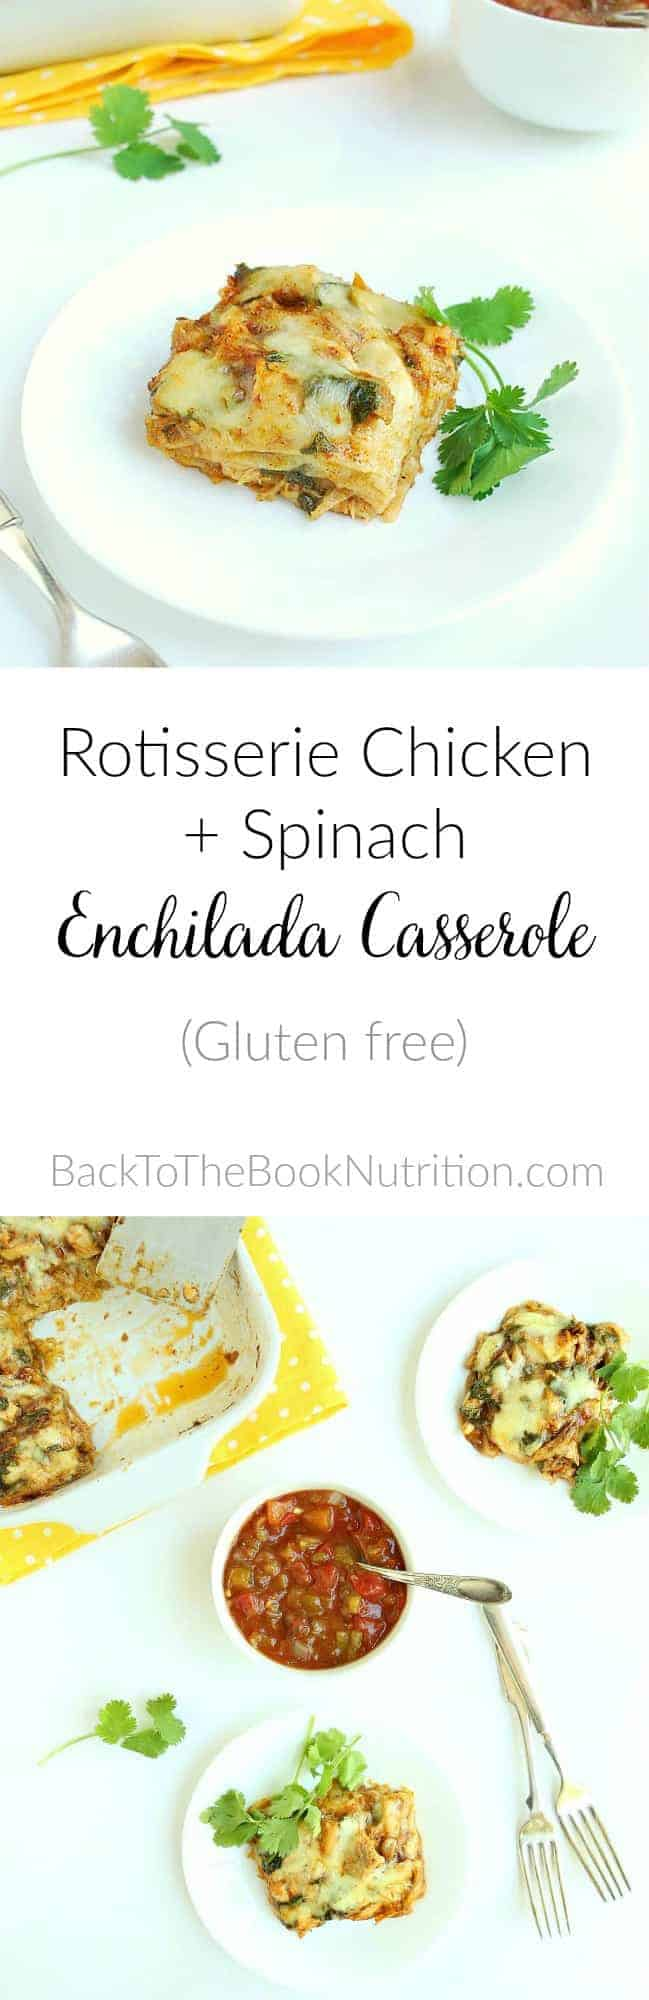 Rotisserie Chicken and Spinach Enchilada Casserole - real food + gluten free Tex Mex for Cinco De Mayo or any time! | Back To The Book Nutrition